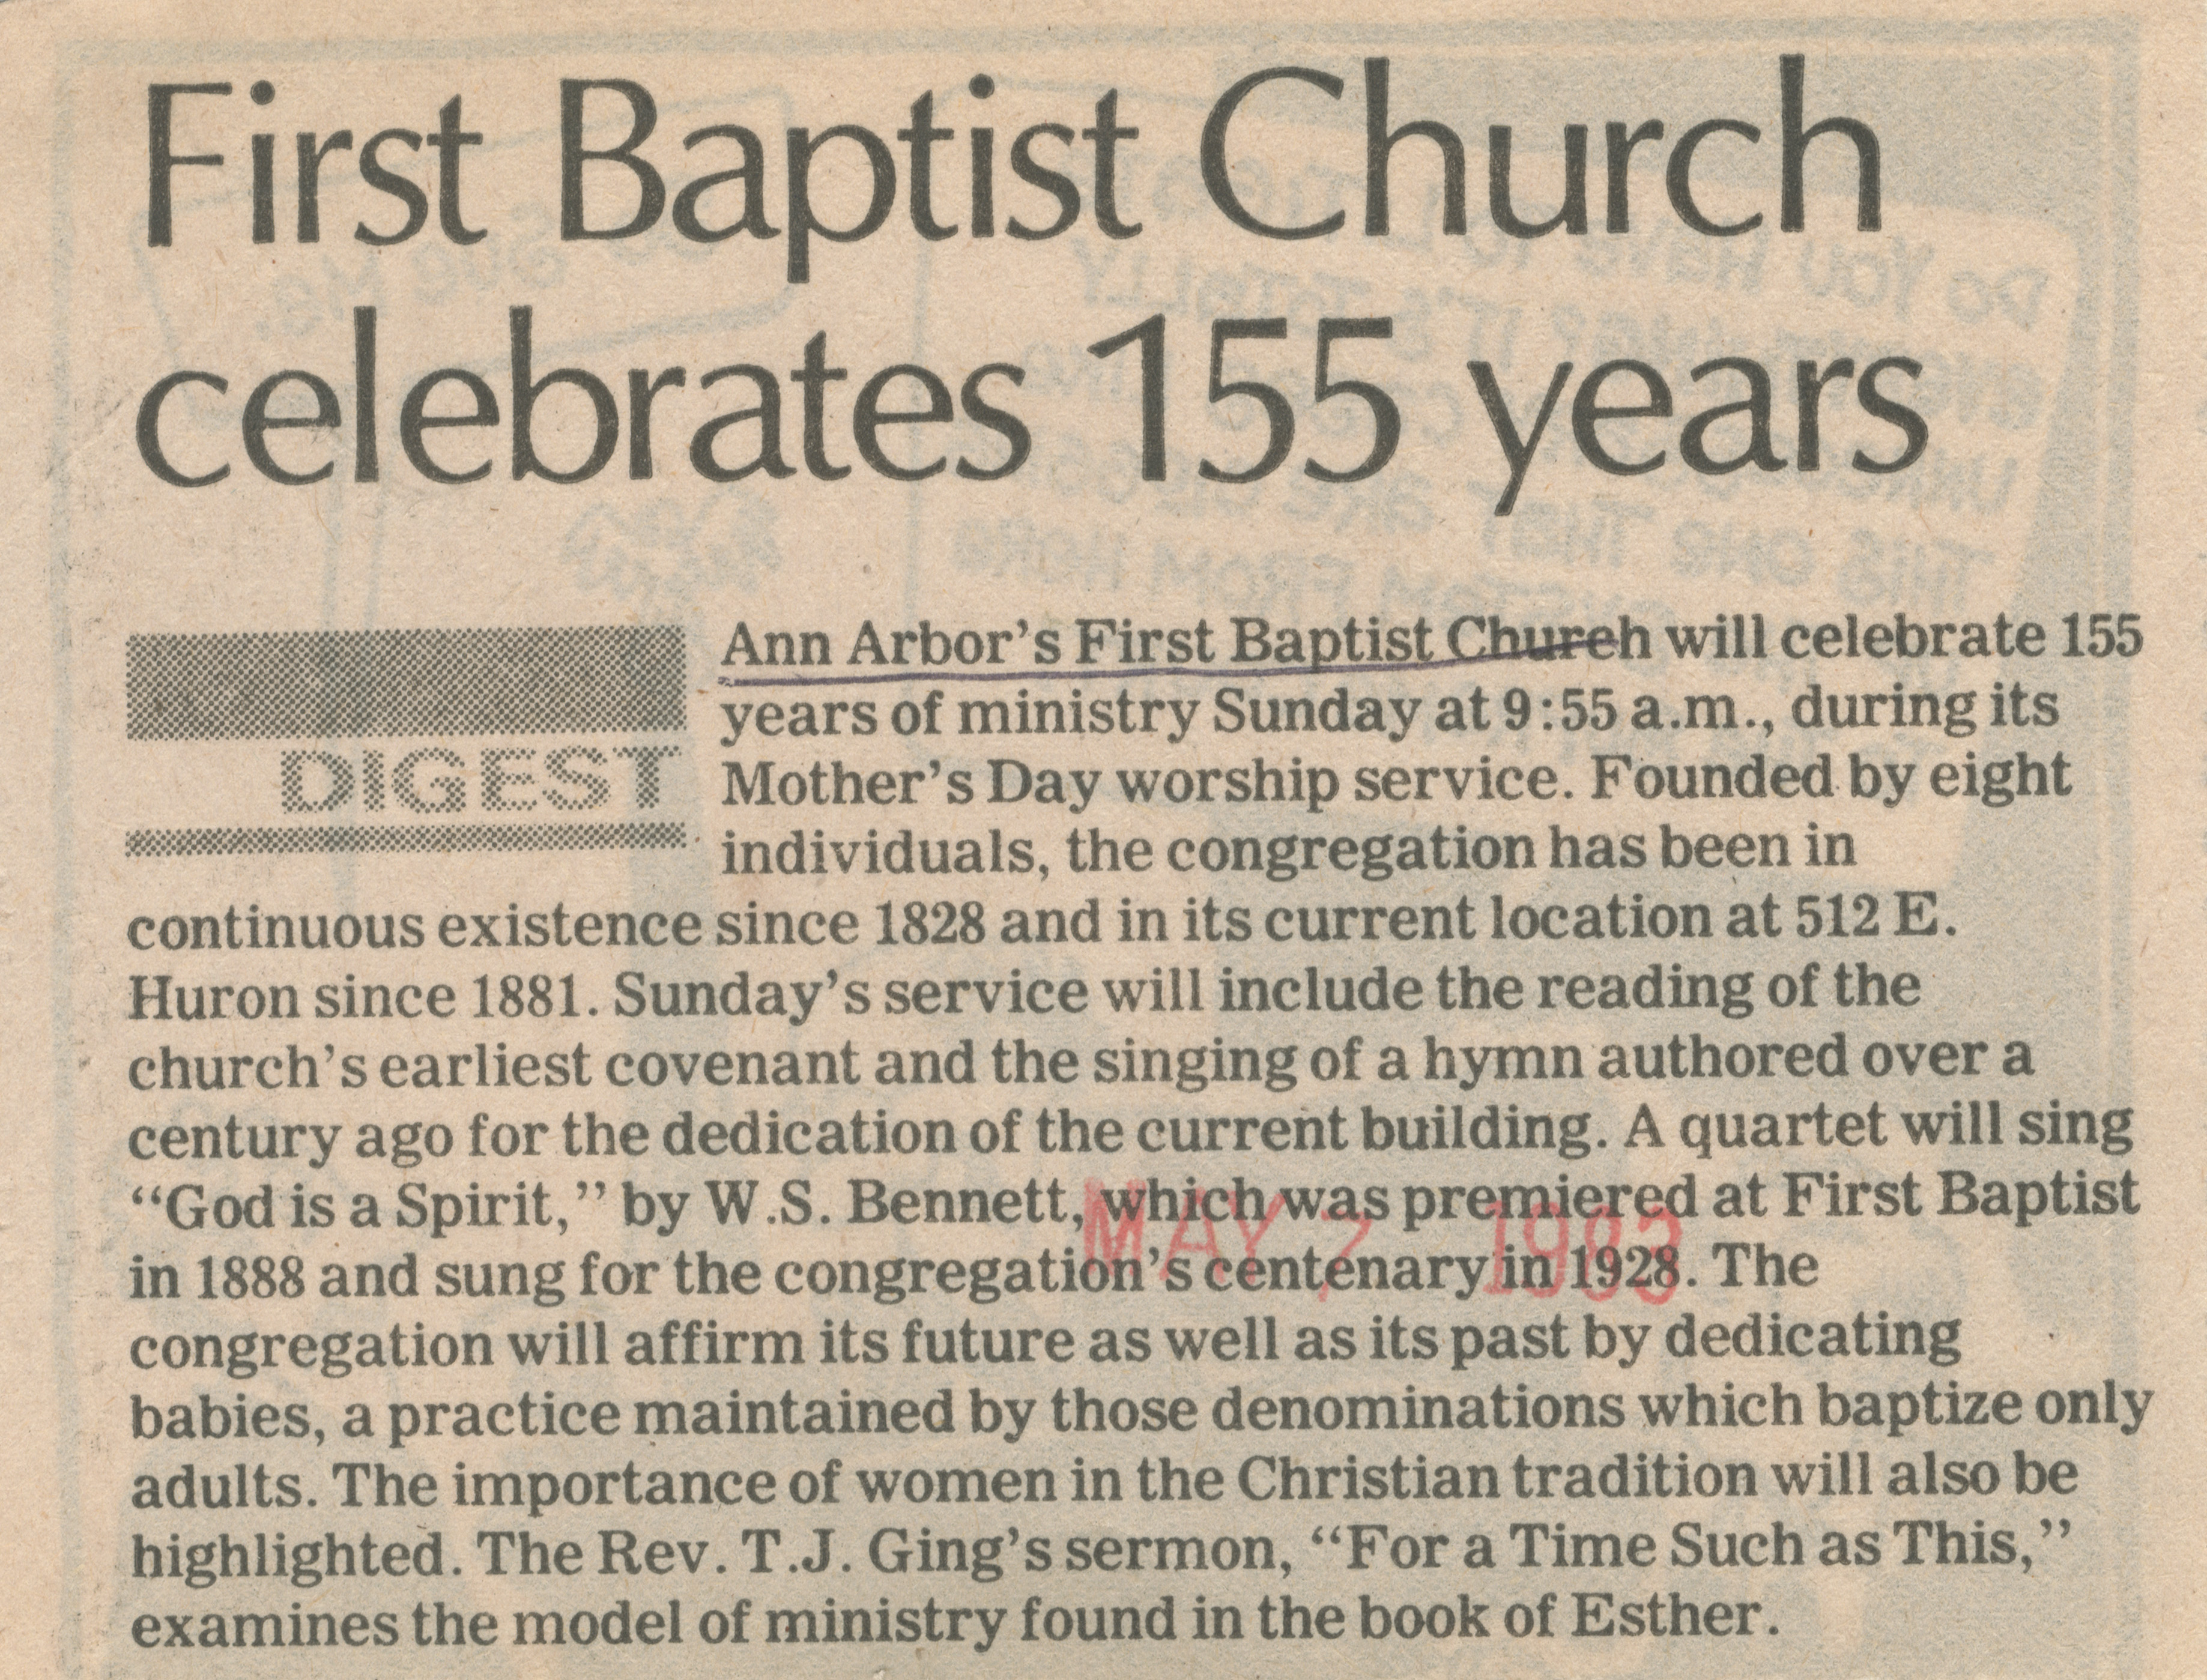 First Baptist Church celebrates 155 years image